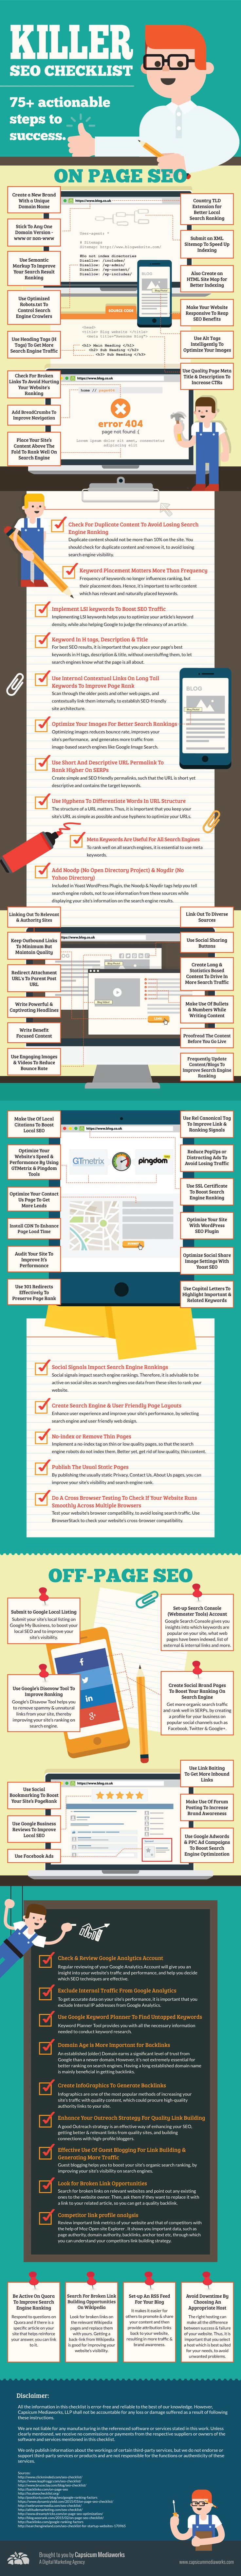 Looking for the ultimate SEO guide? This infographic offers 75+ tactics you can begin implementing today! Make it simple on yourself - save this easy guide!